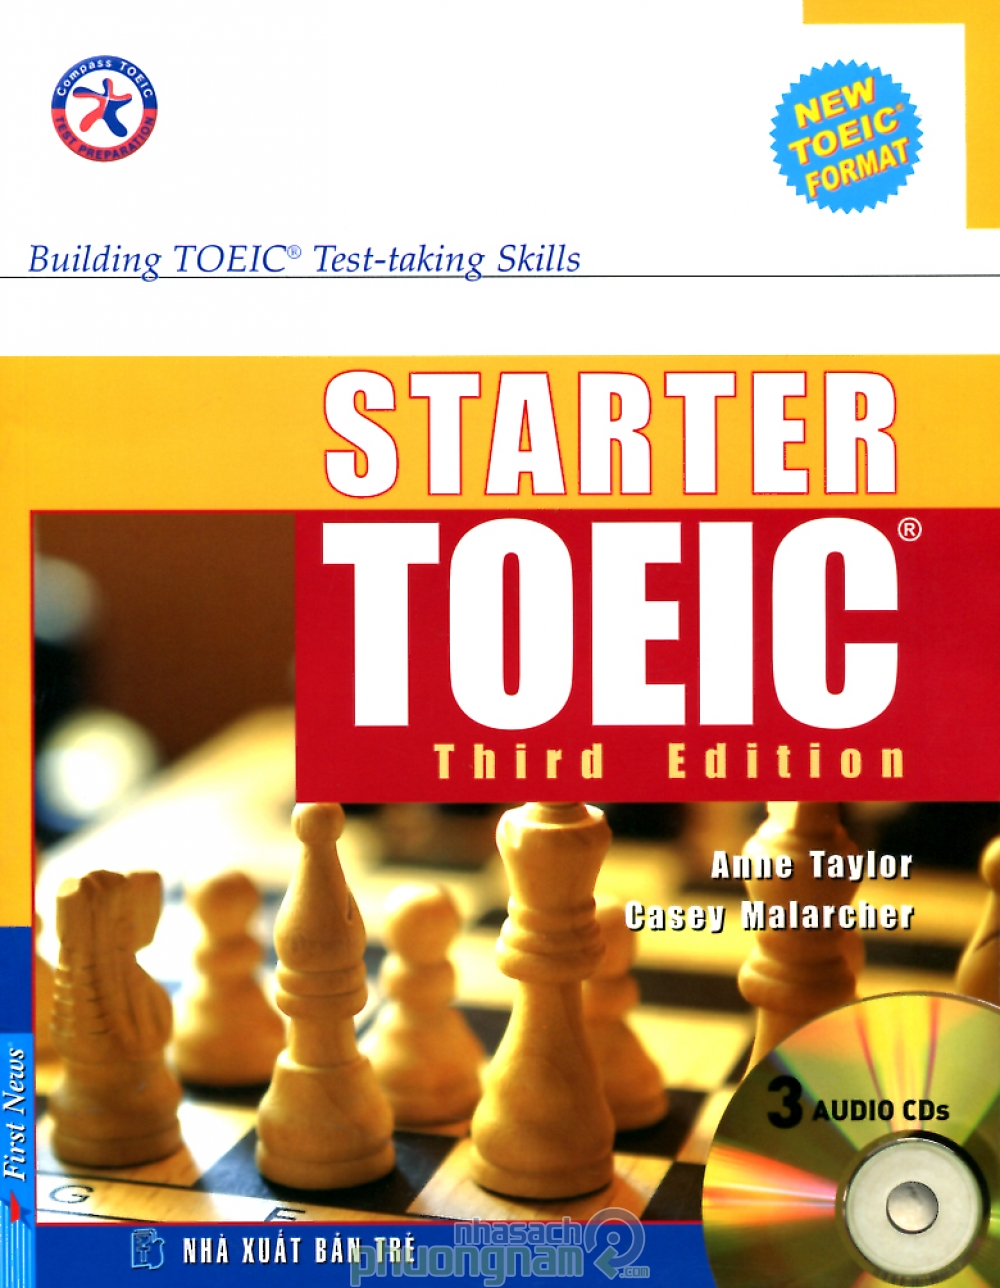 STARTER TOEIC THIRD EDITION PDF DOWNLOAD